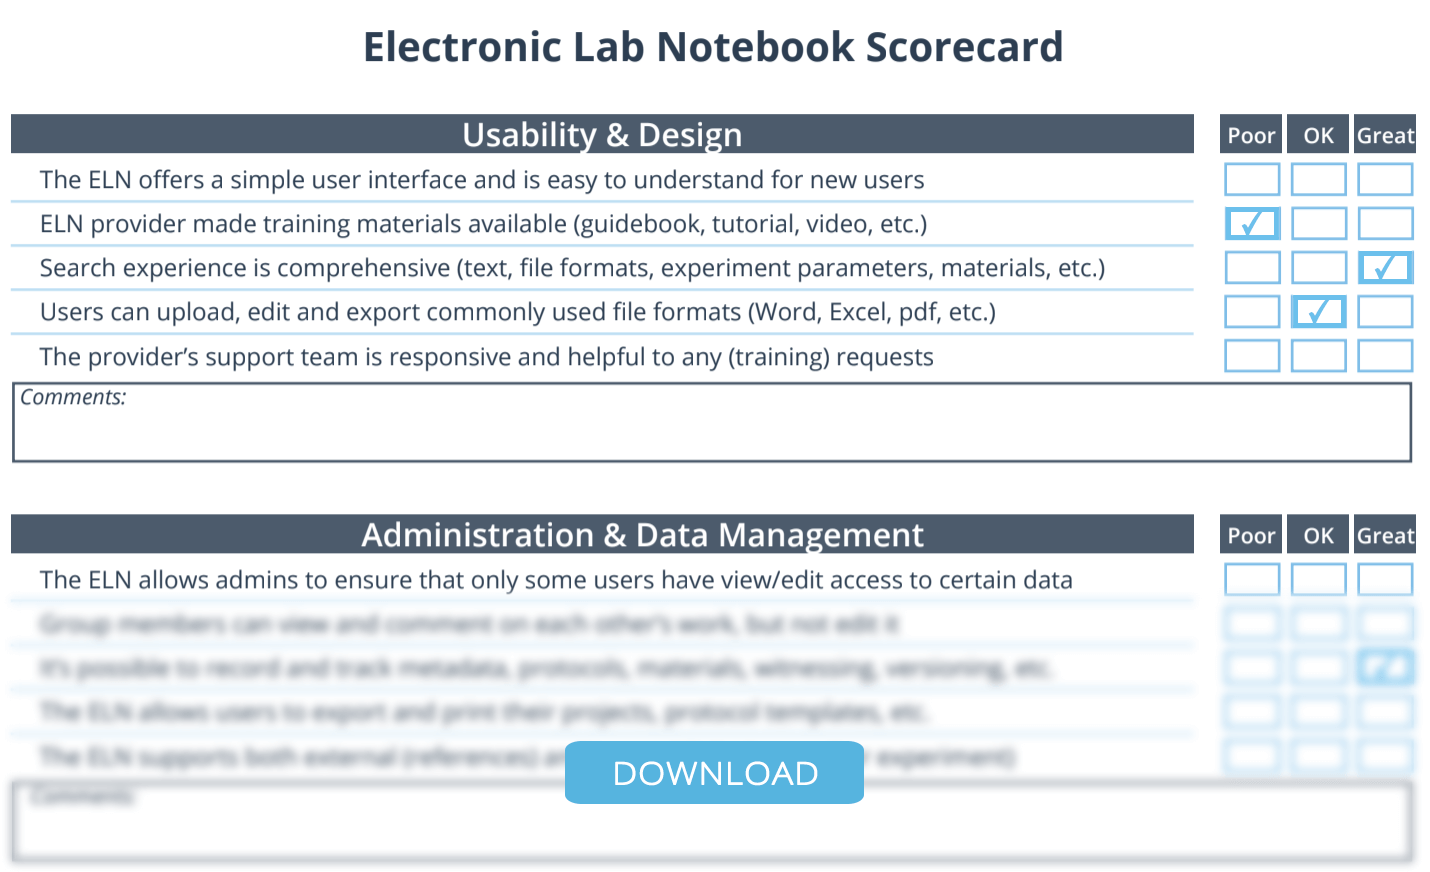 Electronic Lab Notebook Scorecard